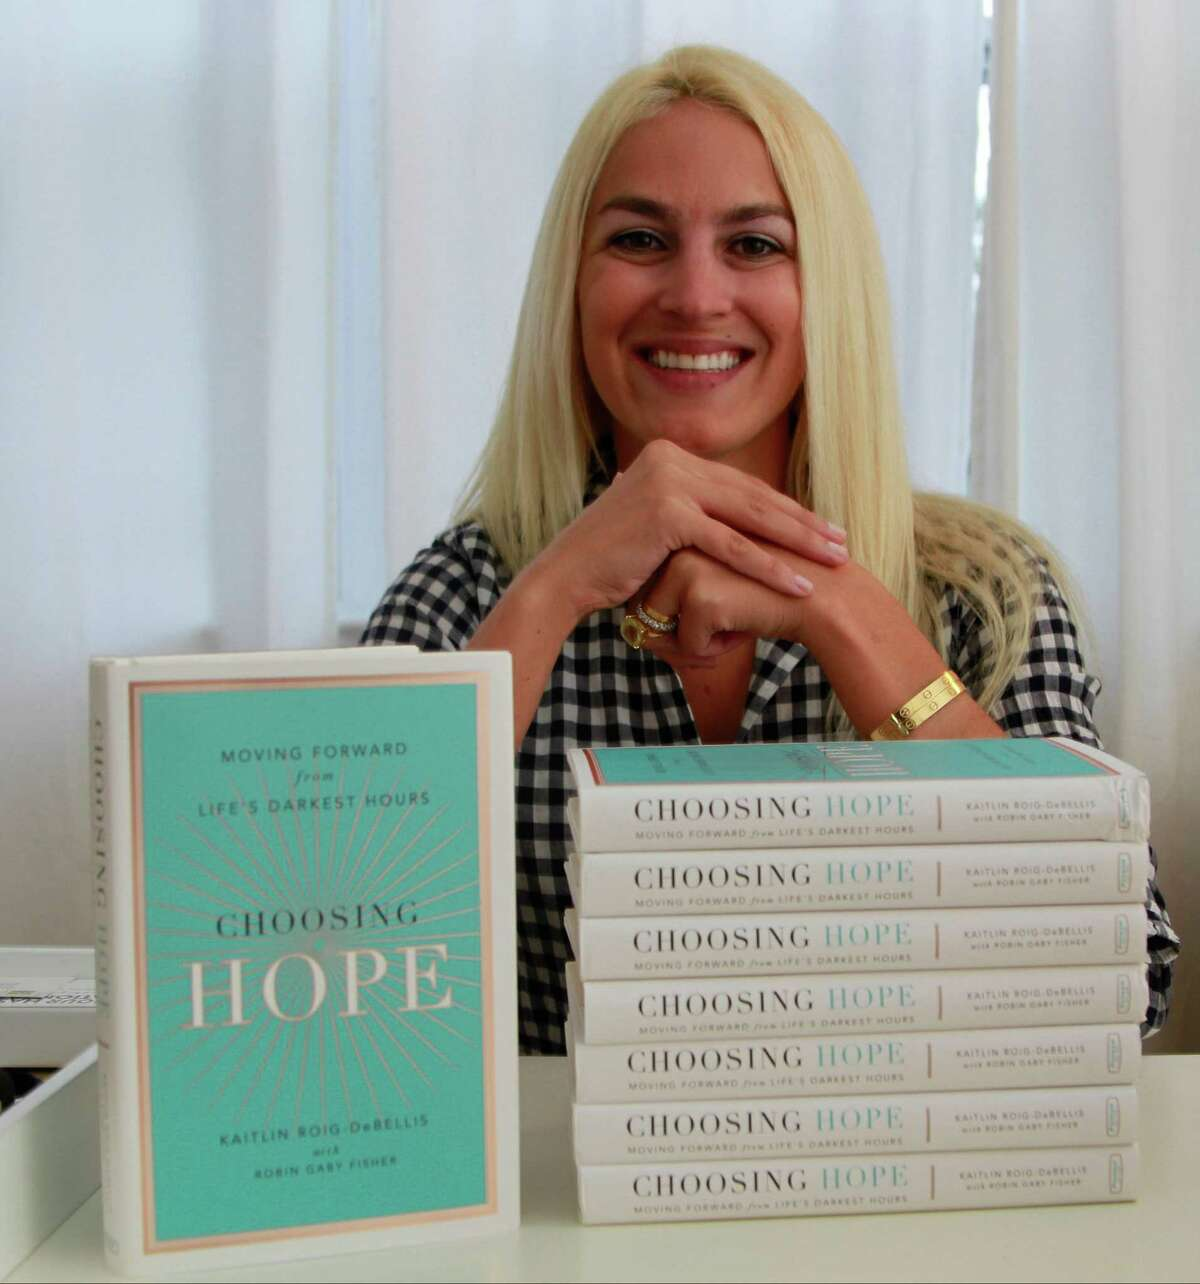 """Kaitlin Roig-DeBellis, a former educator at Sandy Hook Elementary School, at her home in Greenwich on Wednesday. The Sandy Hook teacher wrote a book about surviving the December 2012 tragedy called """"Choosing Hope: Moving Forward from Life's Darkest Hours."""""""